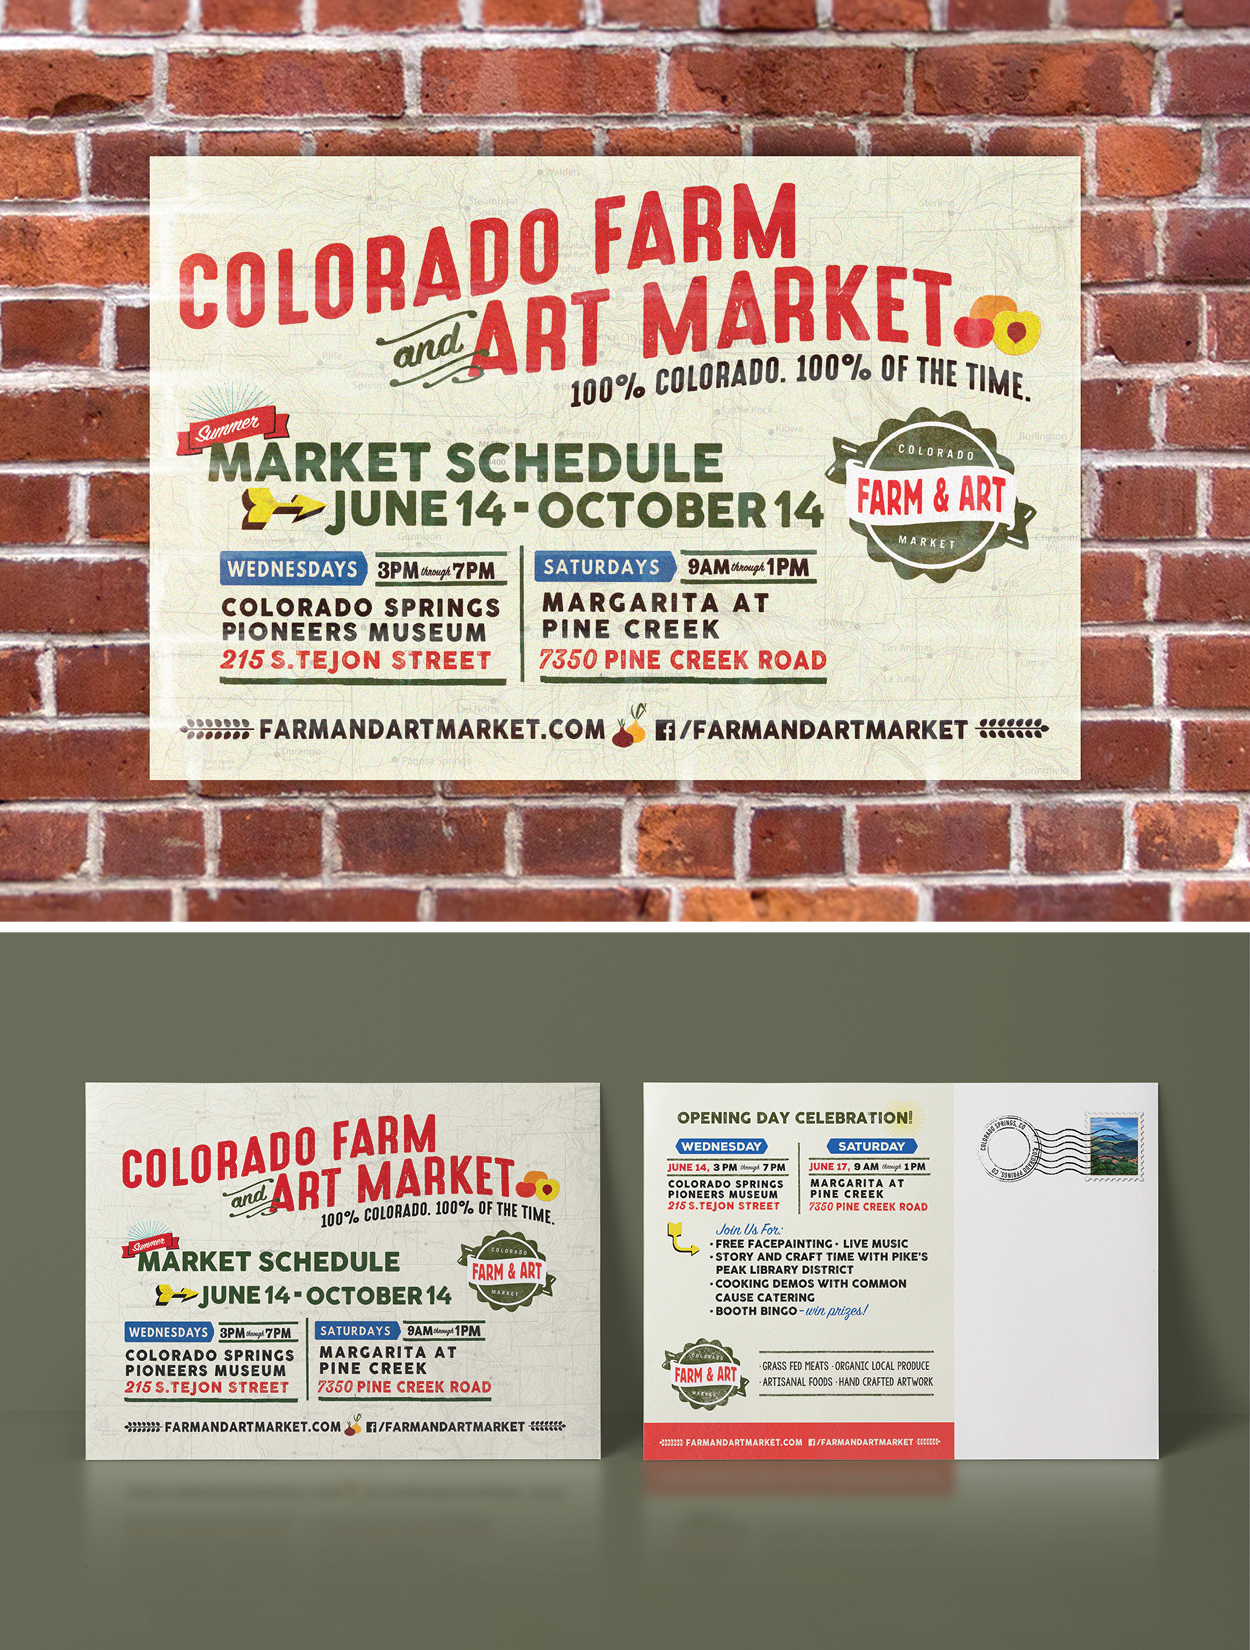 COLORADO FARM AND ART MARKET